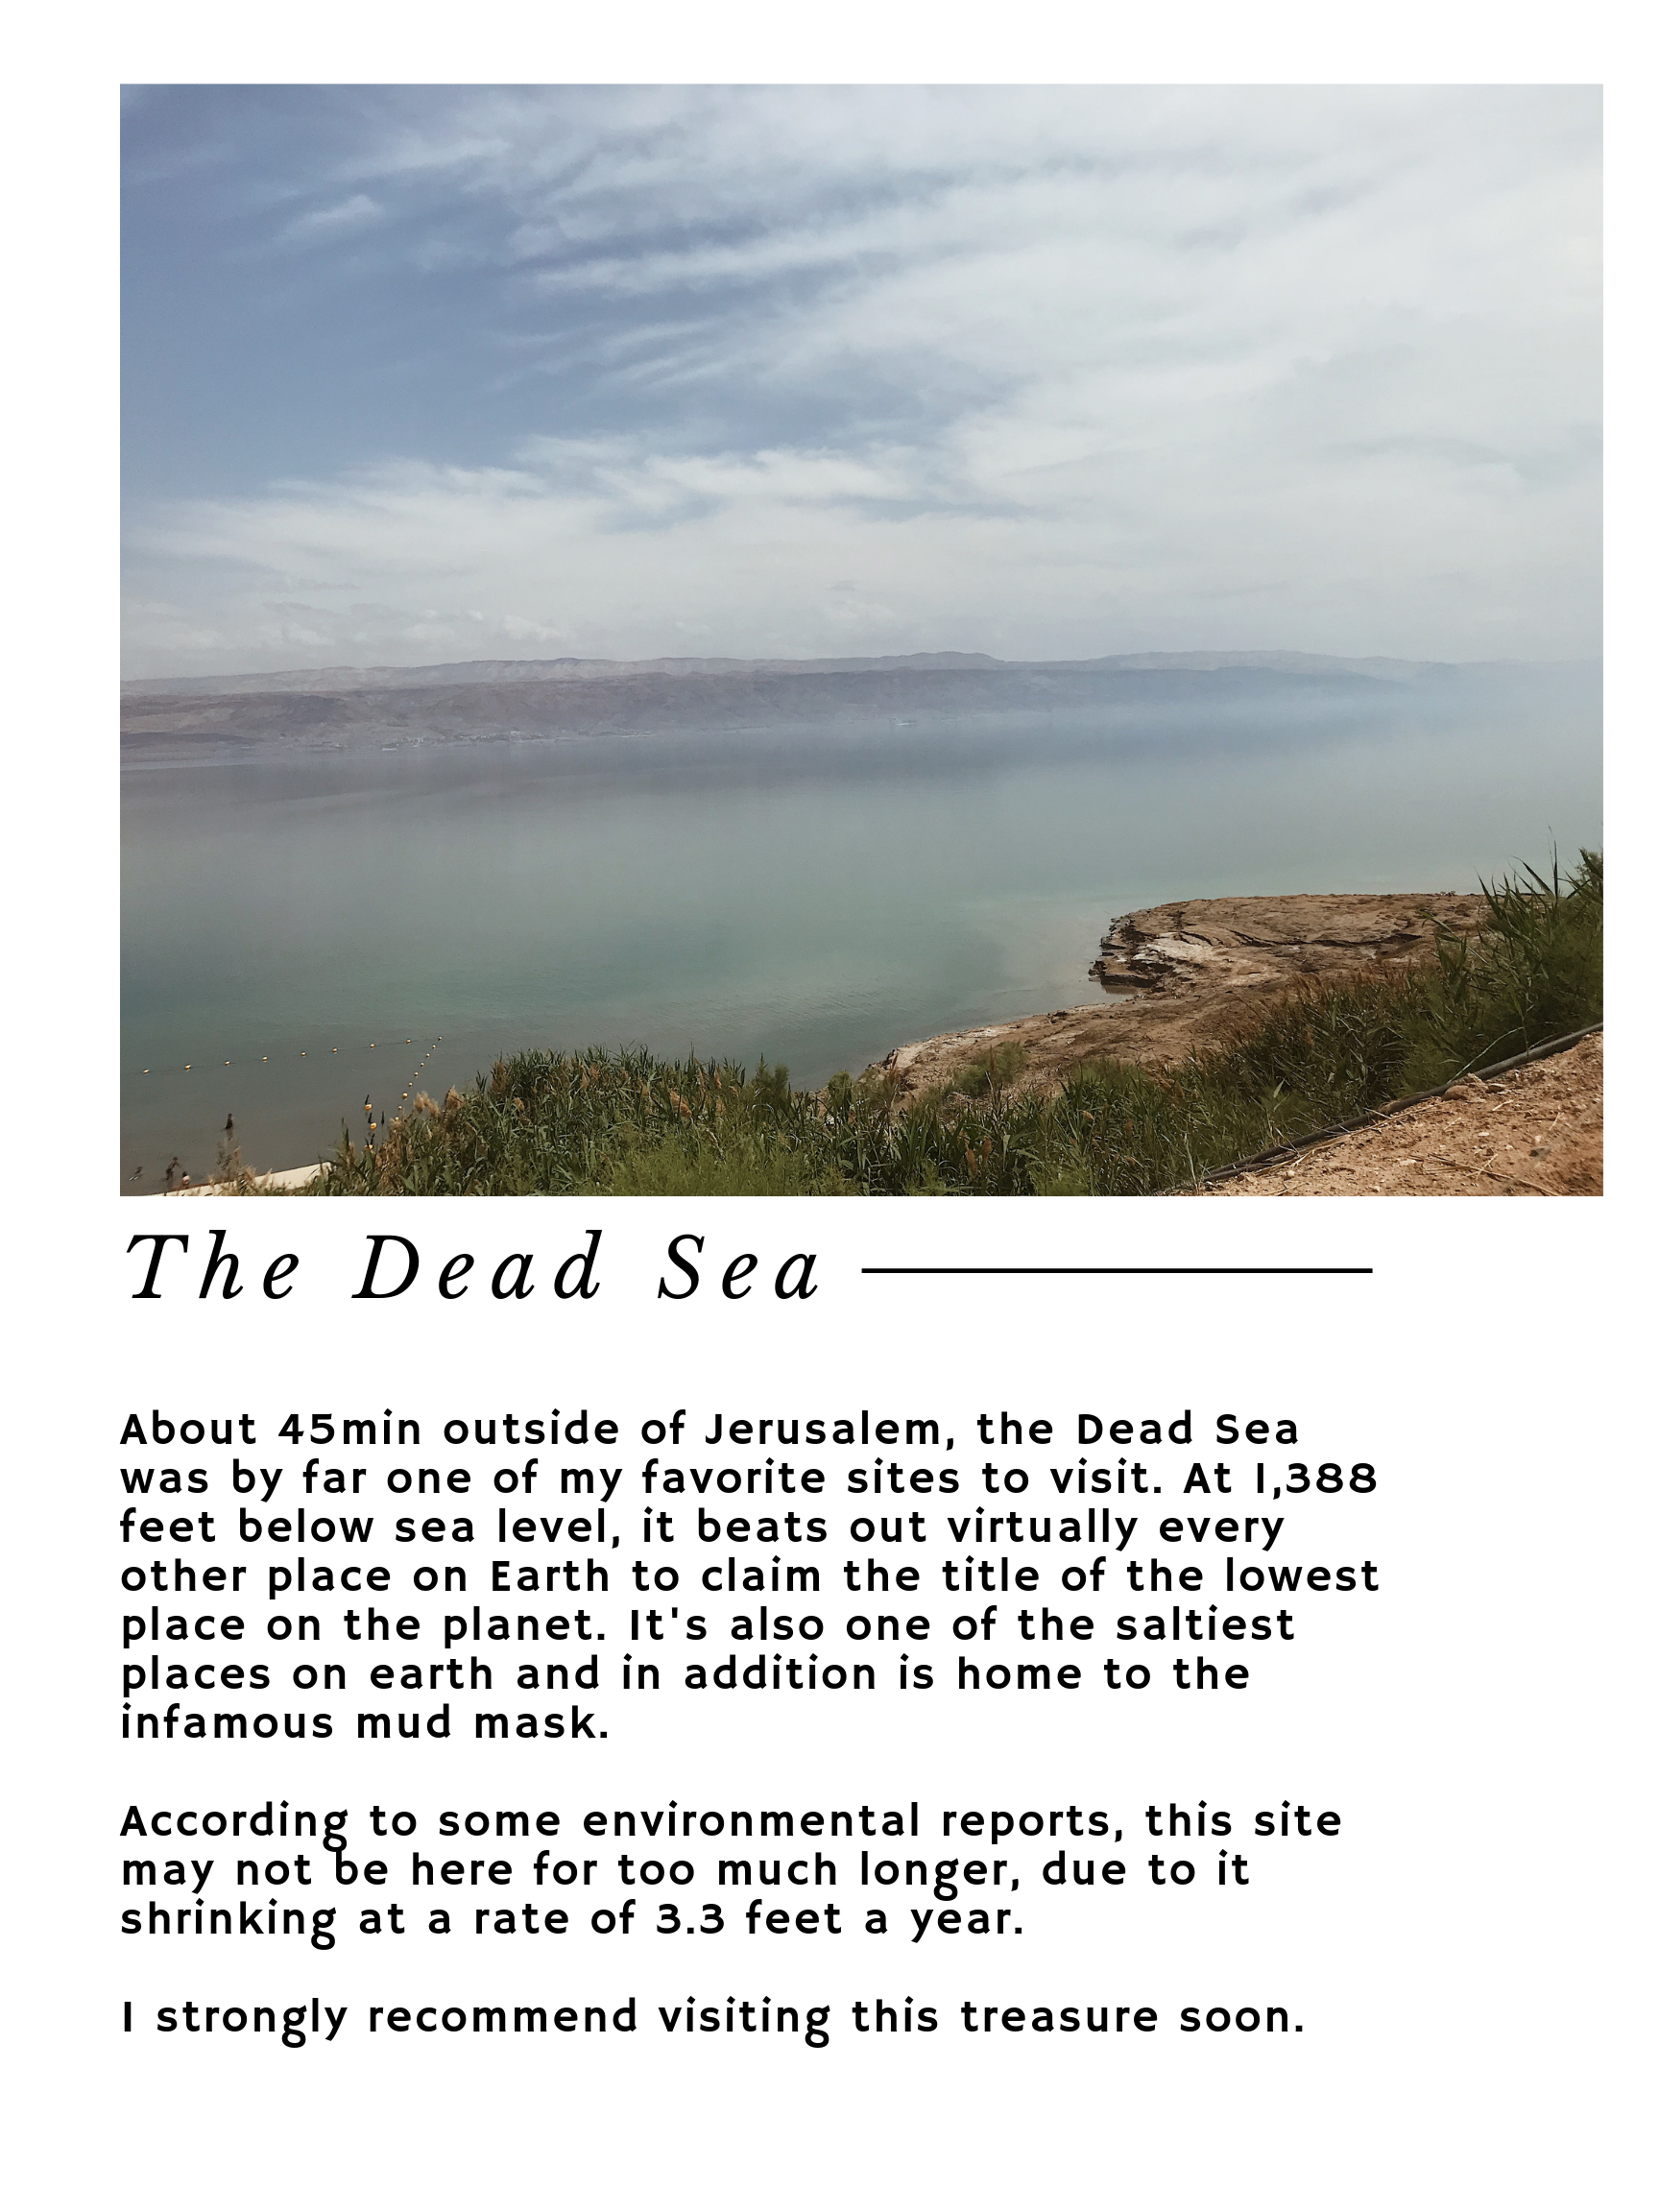 About 45min outside of Jerusalem, the Dead Sea was by far one of my favorite sites to visit. At 1,388 feet below sea level, it beats out virtually every other place on Earth to claim the title of the lowest place on the planet. It's also one of the saltiest places on earth and in addition is home to the infamous mud mask.     According to some environmental reports, this site may not be here for too much longer, due to it shrinking at a rate of 3.3 feet a year.     I strongly recommend visiting this treasure soon.